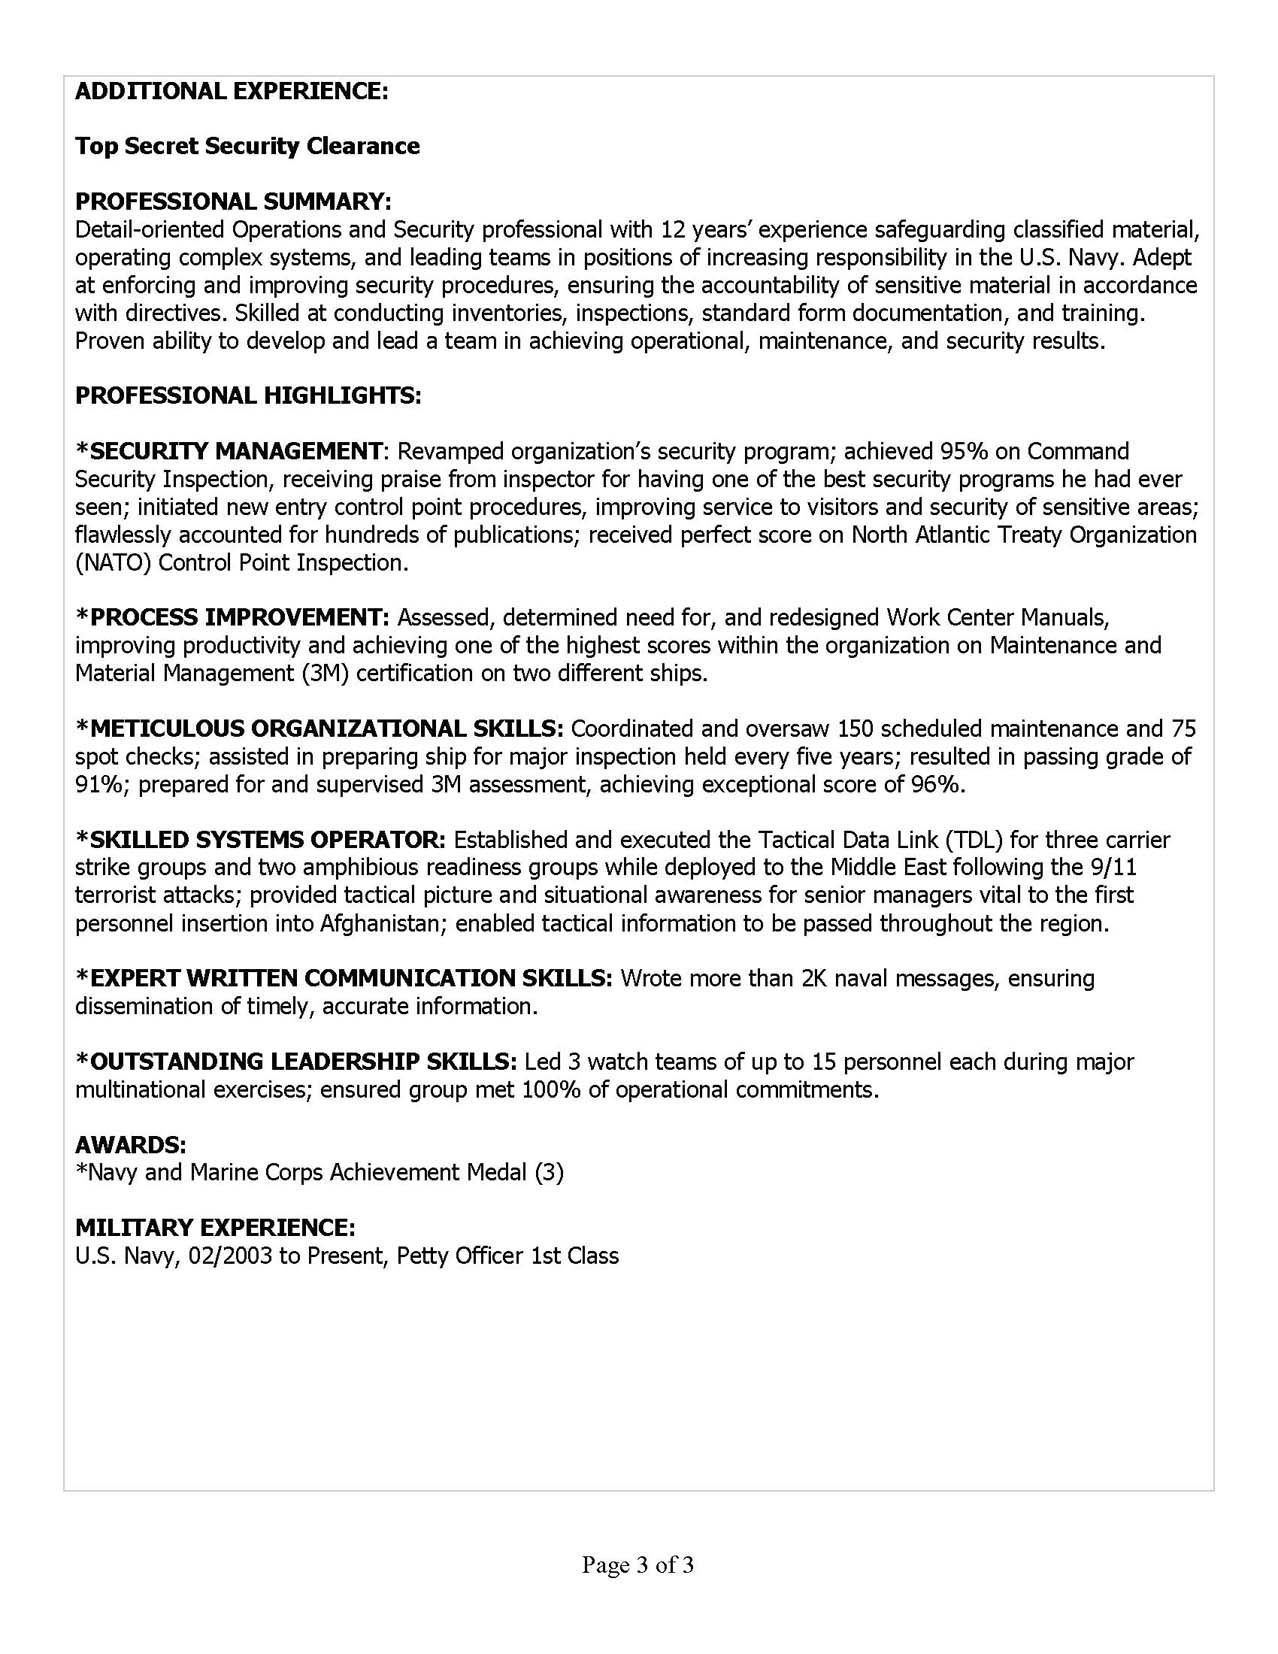 Resume Writer Jobs Resume For Usajobs Gov Usa Jobs Builder Sample Cover Letter  Home